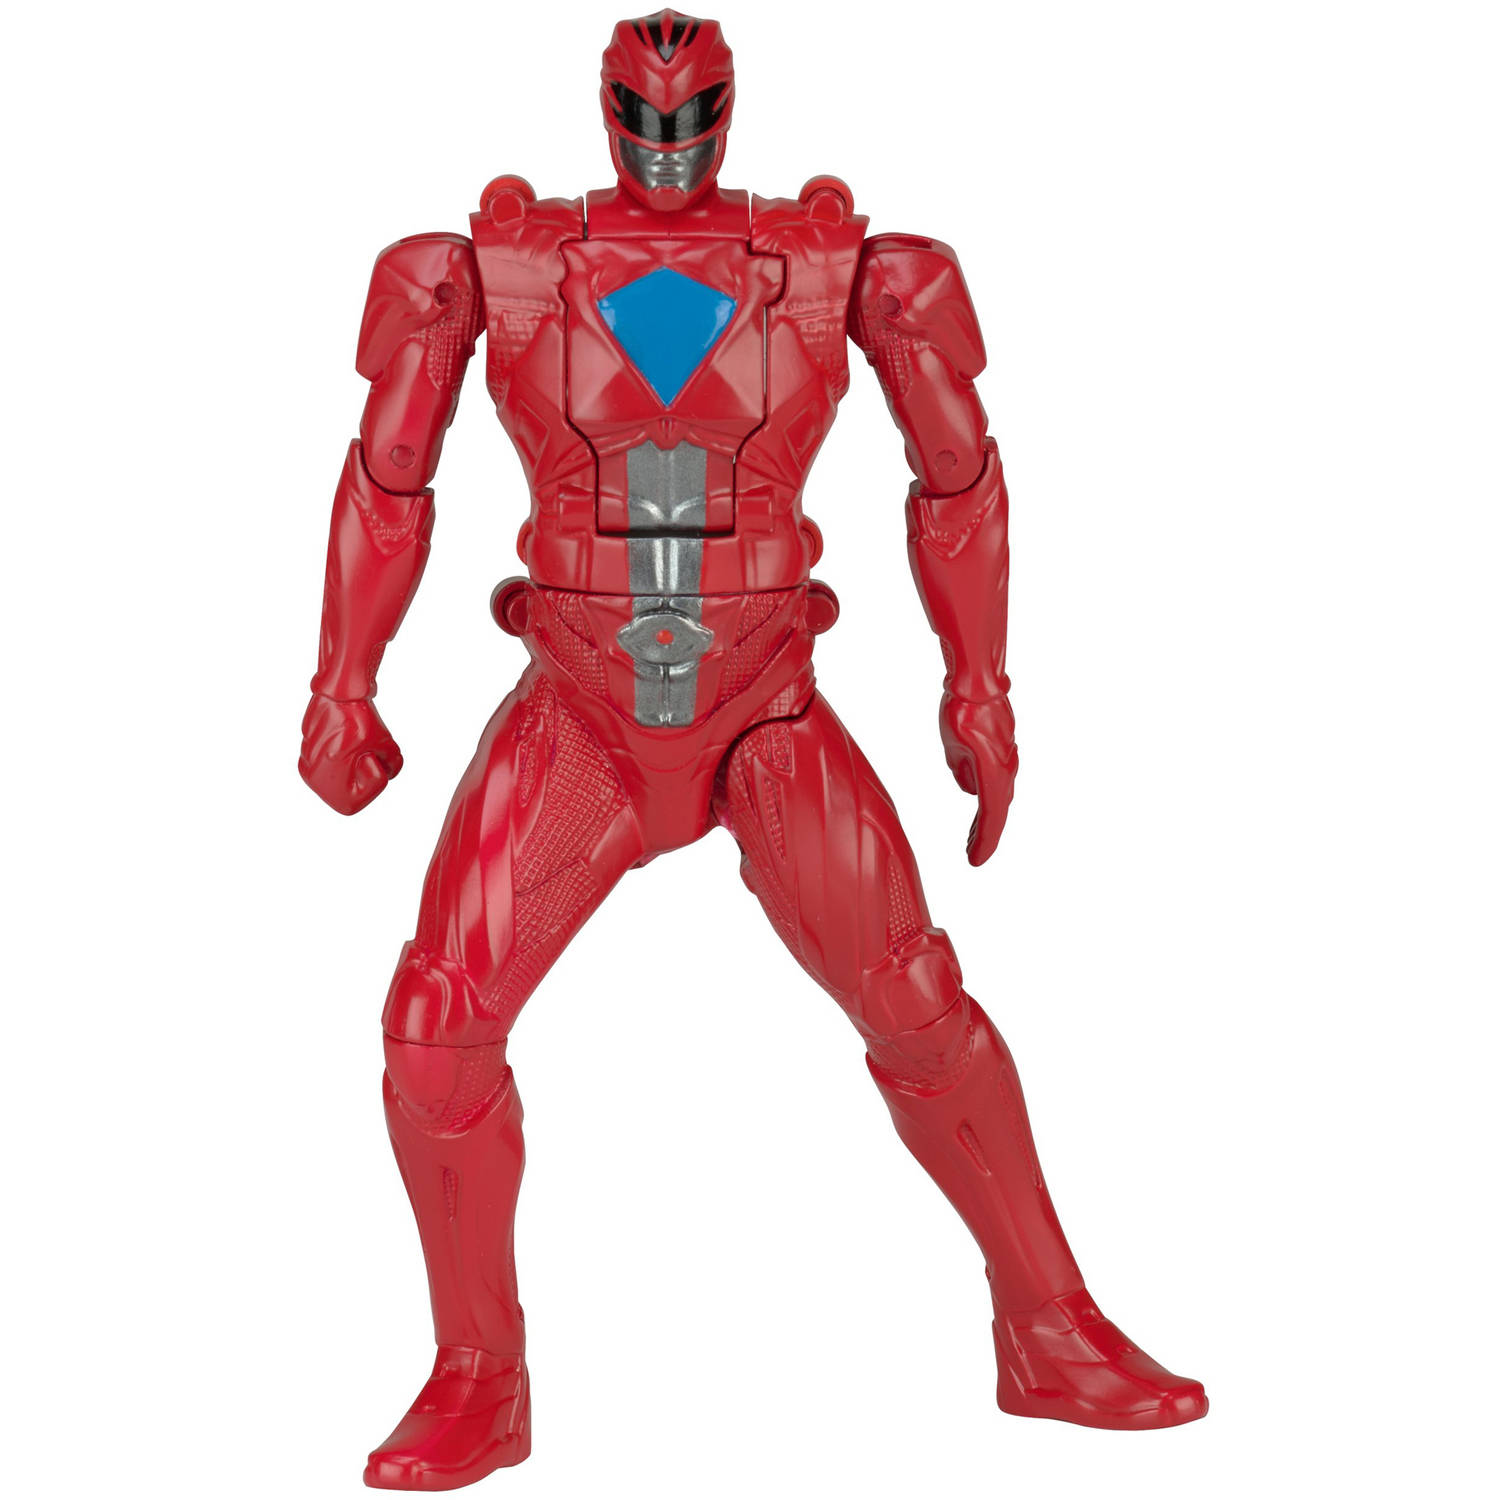 Power Rangers Movie Super Morphing Red Ranger Figure